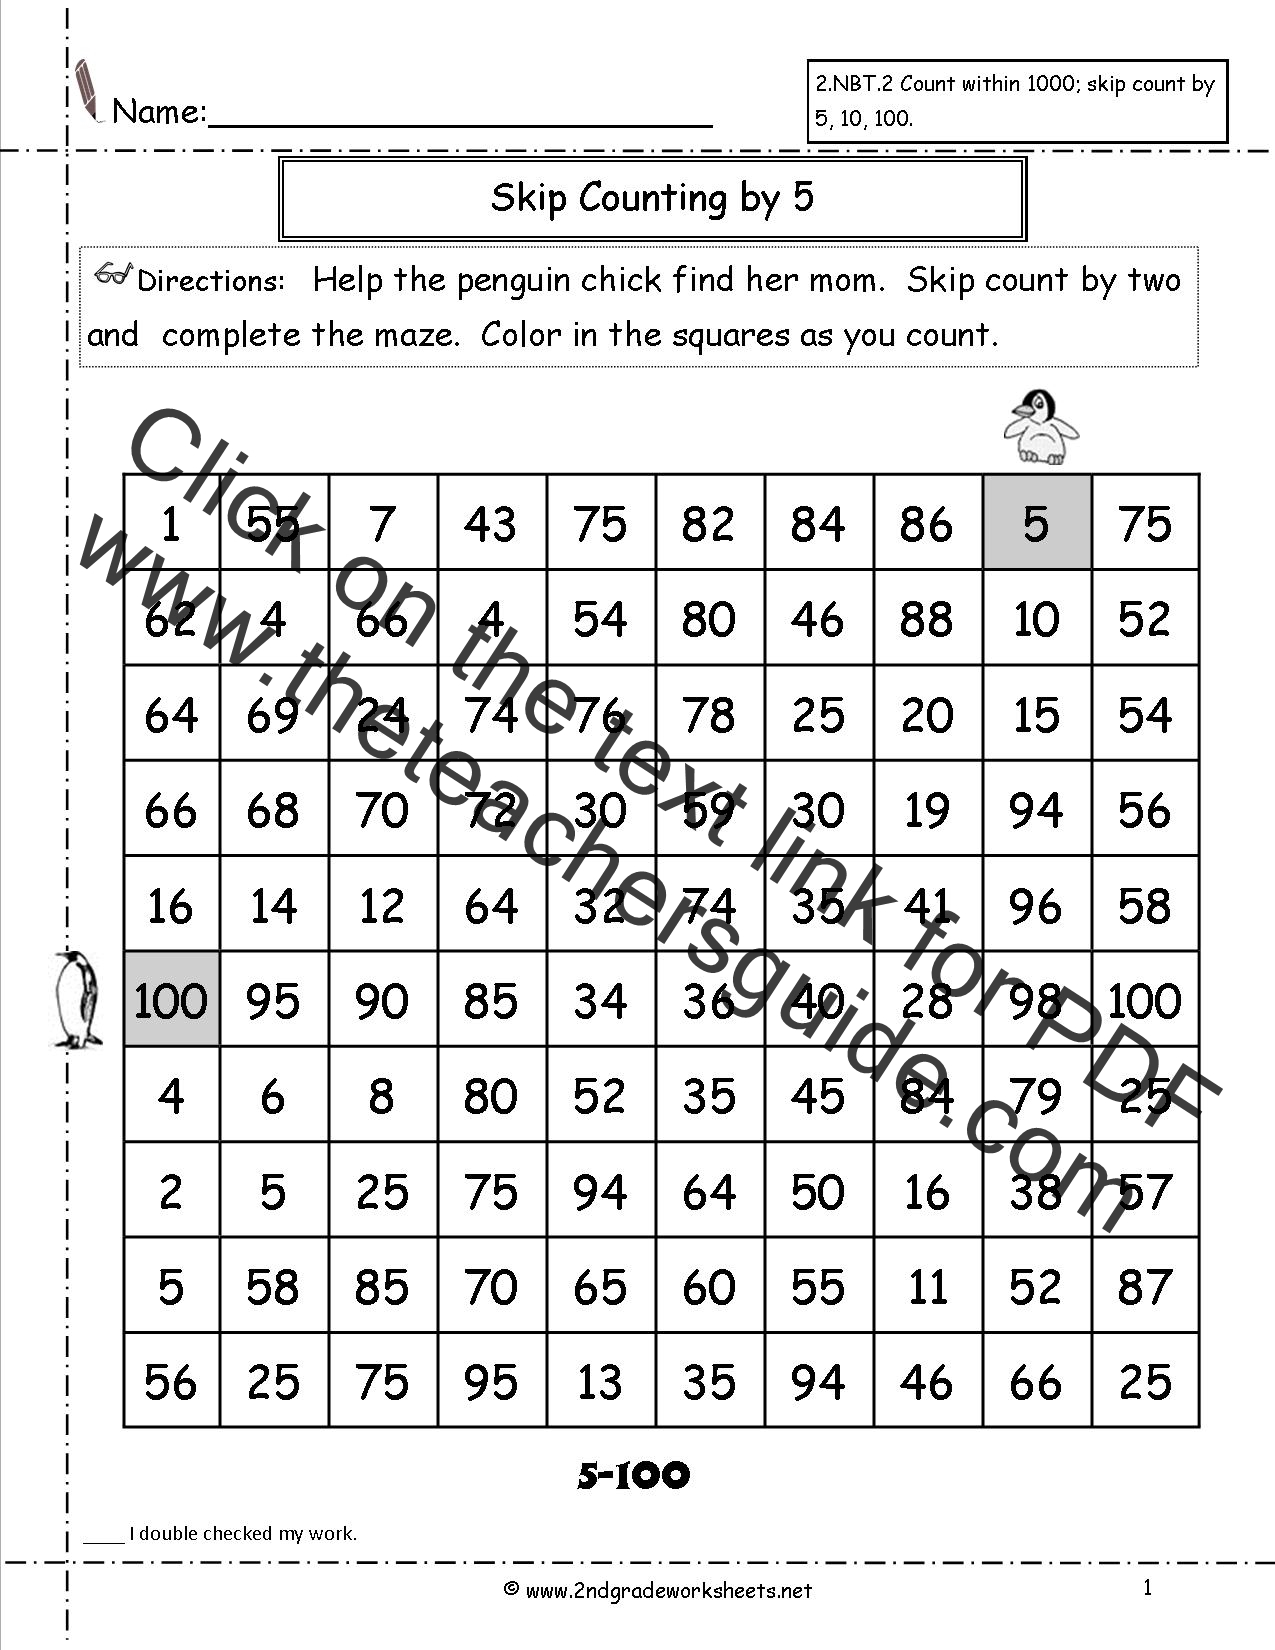 worksheet Counting To 100 Worksheet free skip counting worksheets by 5 maze